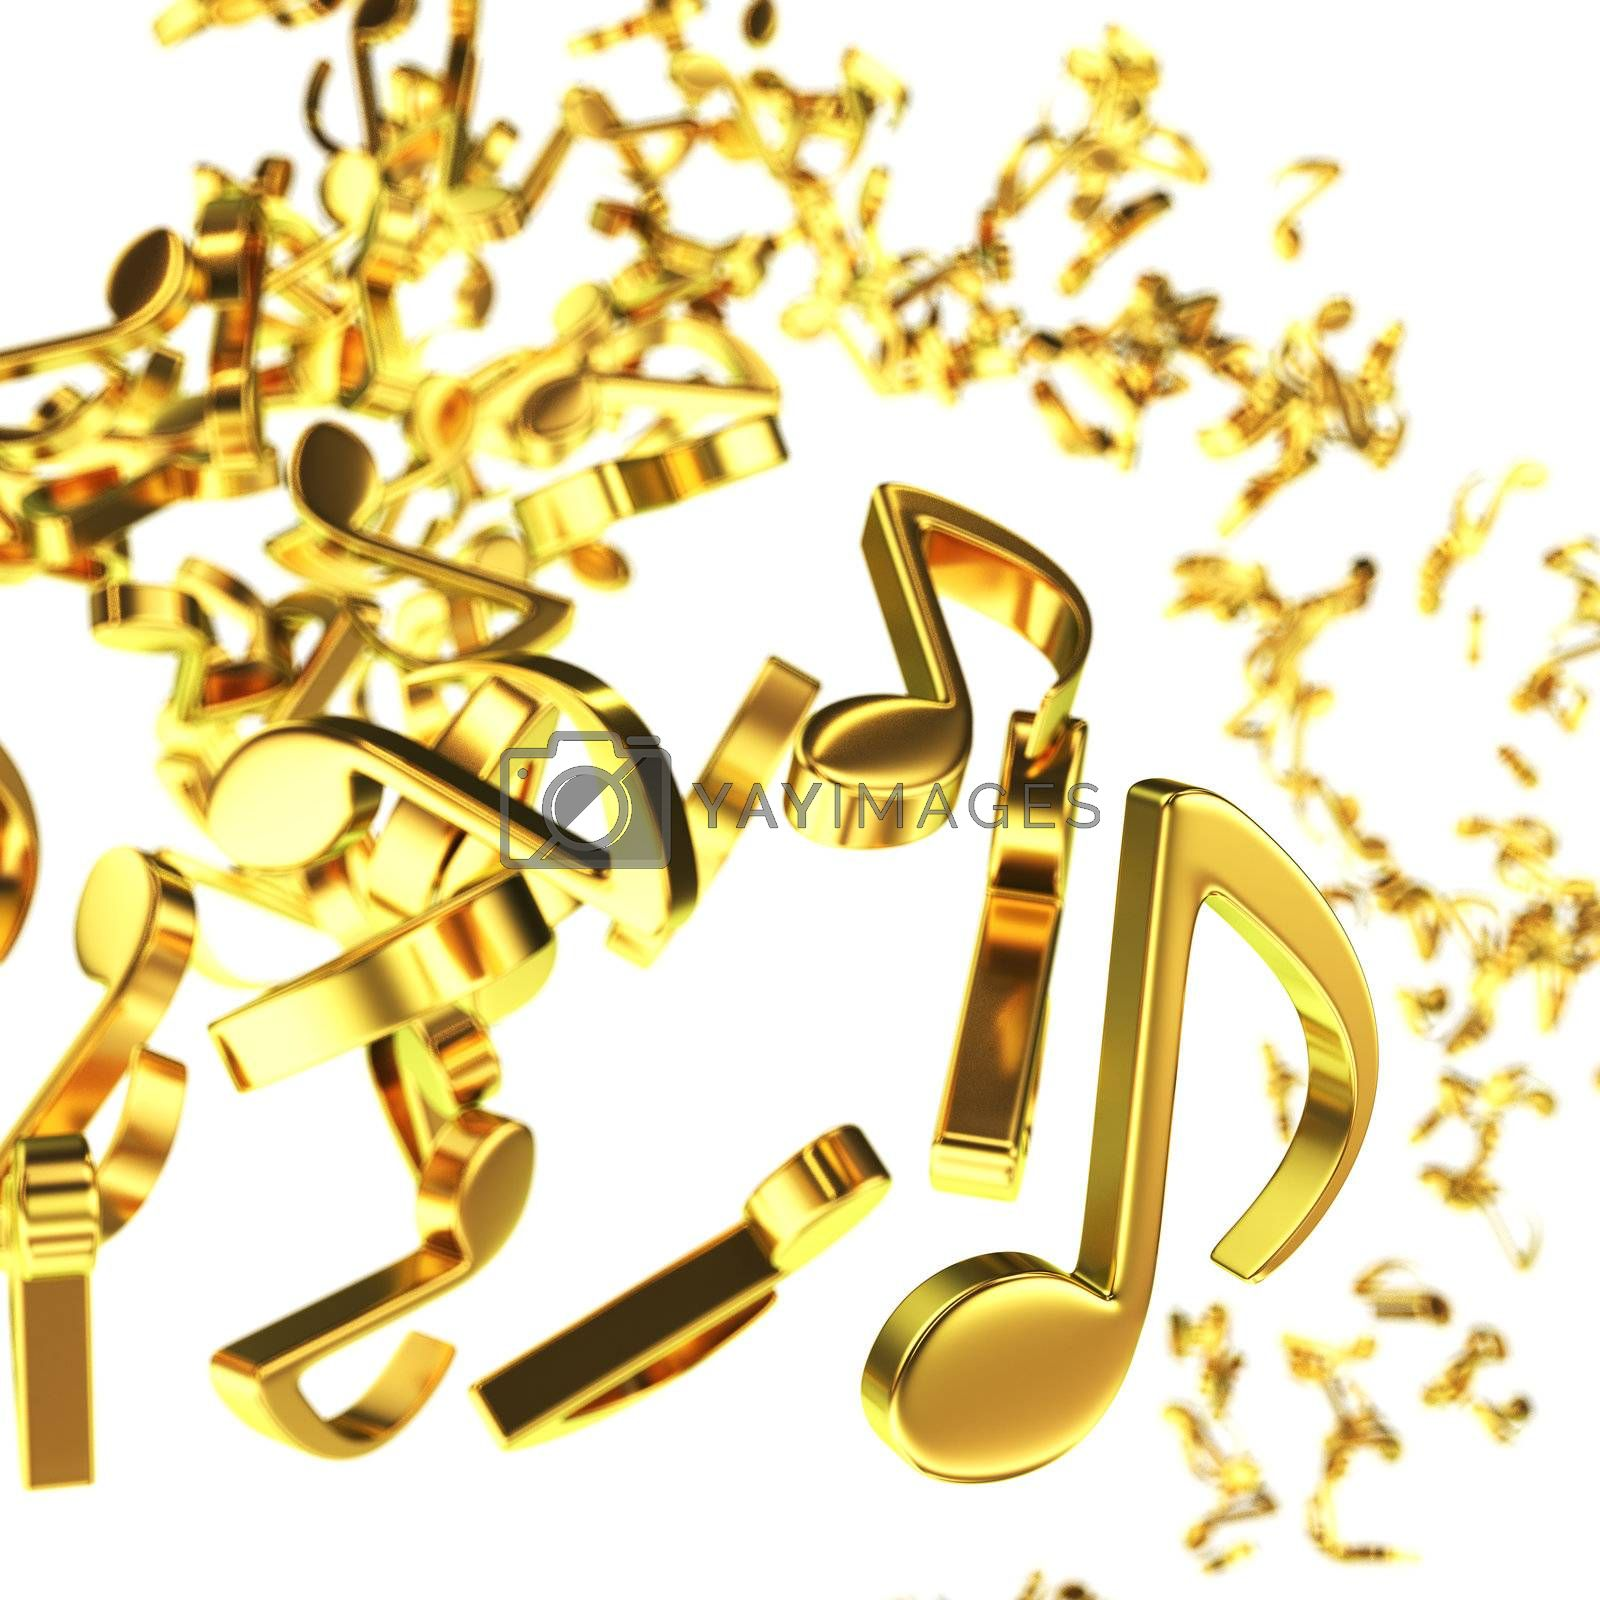 Golden note symbols chaotic flying on the white background